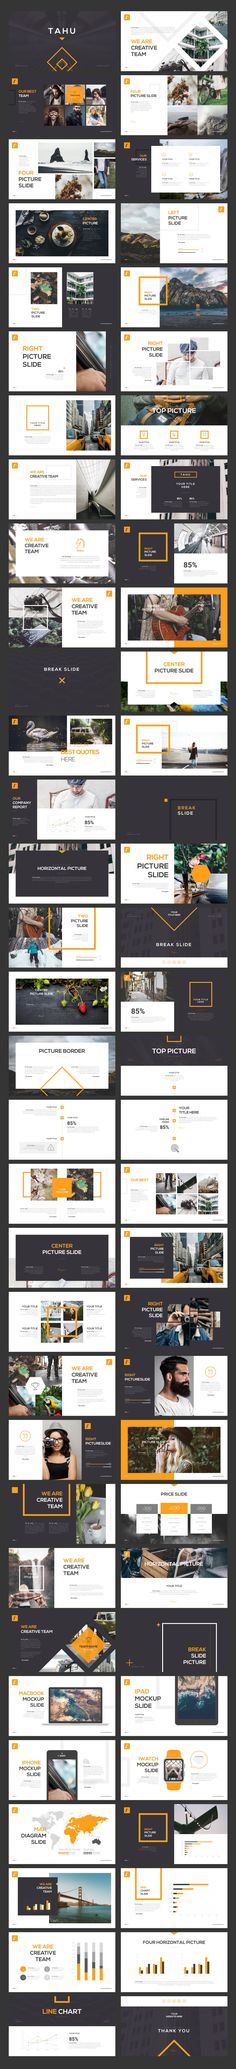 TAHU Keynote Template by Angkalimabelas on Creative Market